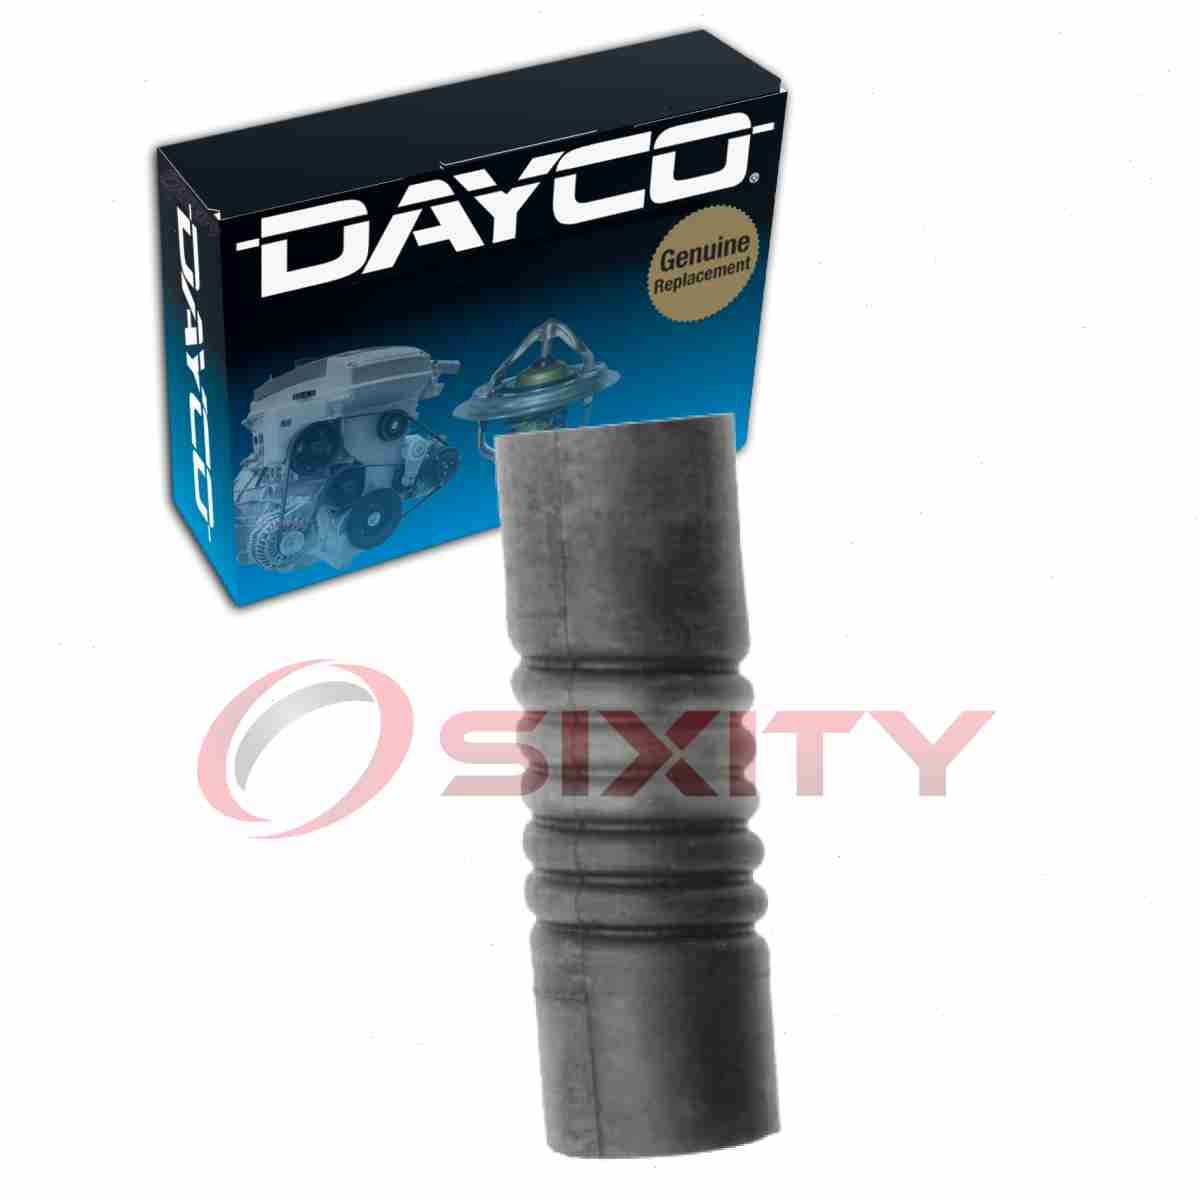 details about dayco lower radiator hose for 1932 cadillac 370 b - engine  coolant heating iv